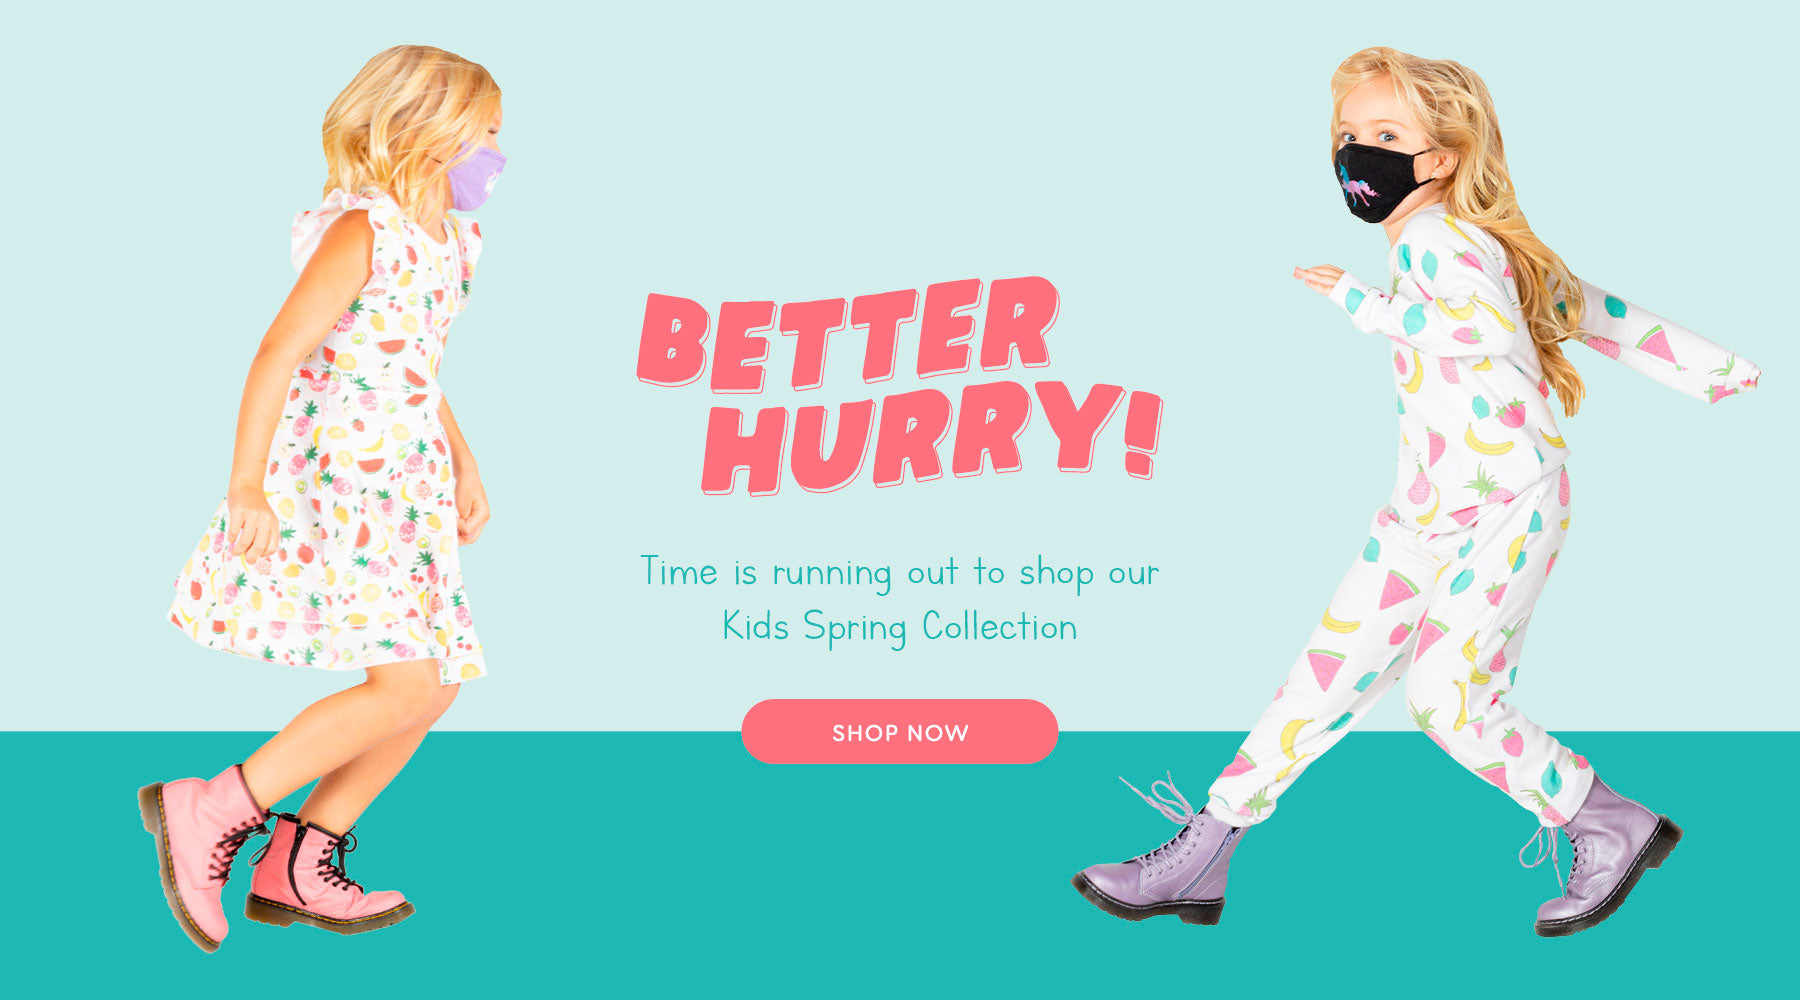 Scoop up the kids' collection for spring while it lasts. Browse new arrivals now!